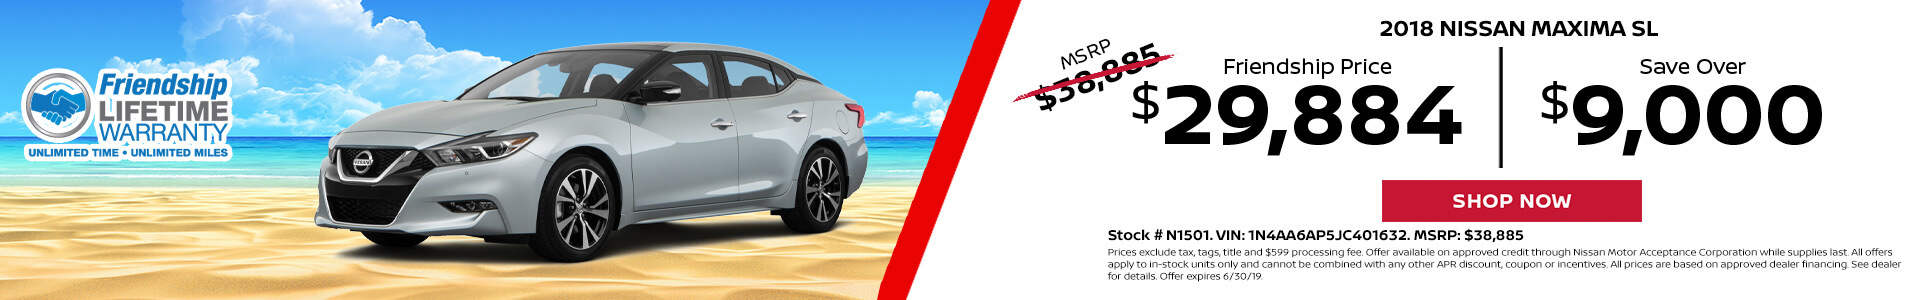 Nissan Maxima $29,884 Purchase